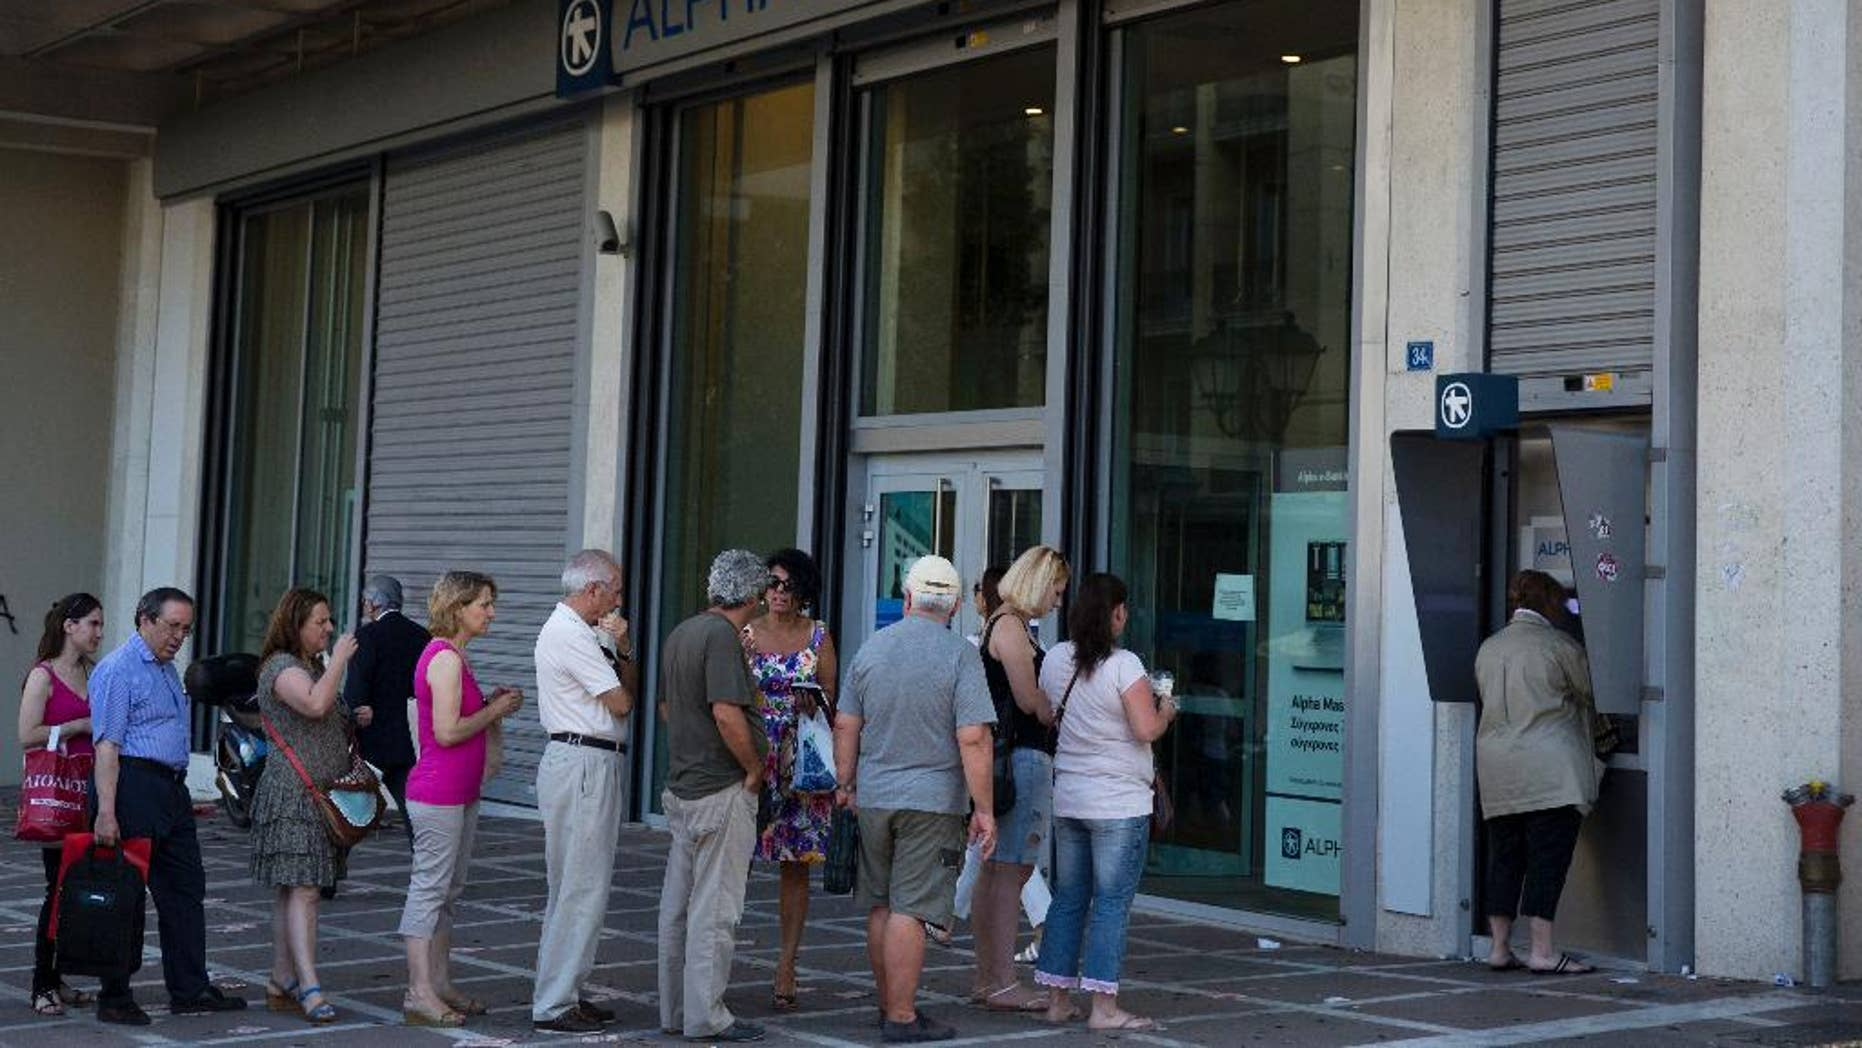 """People line up to use an ATM machine outside a bank in Athens, on Monday, July 6, 2015. Greece's Finance Minister Yanis Varoufakis has resigned following Sunday's referendum in which the majority of voters said """"no"""" to more austerity measures in exchange for another financial bailout. (AP Photo/Petros Giannakouris)"""